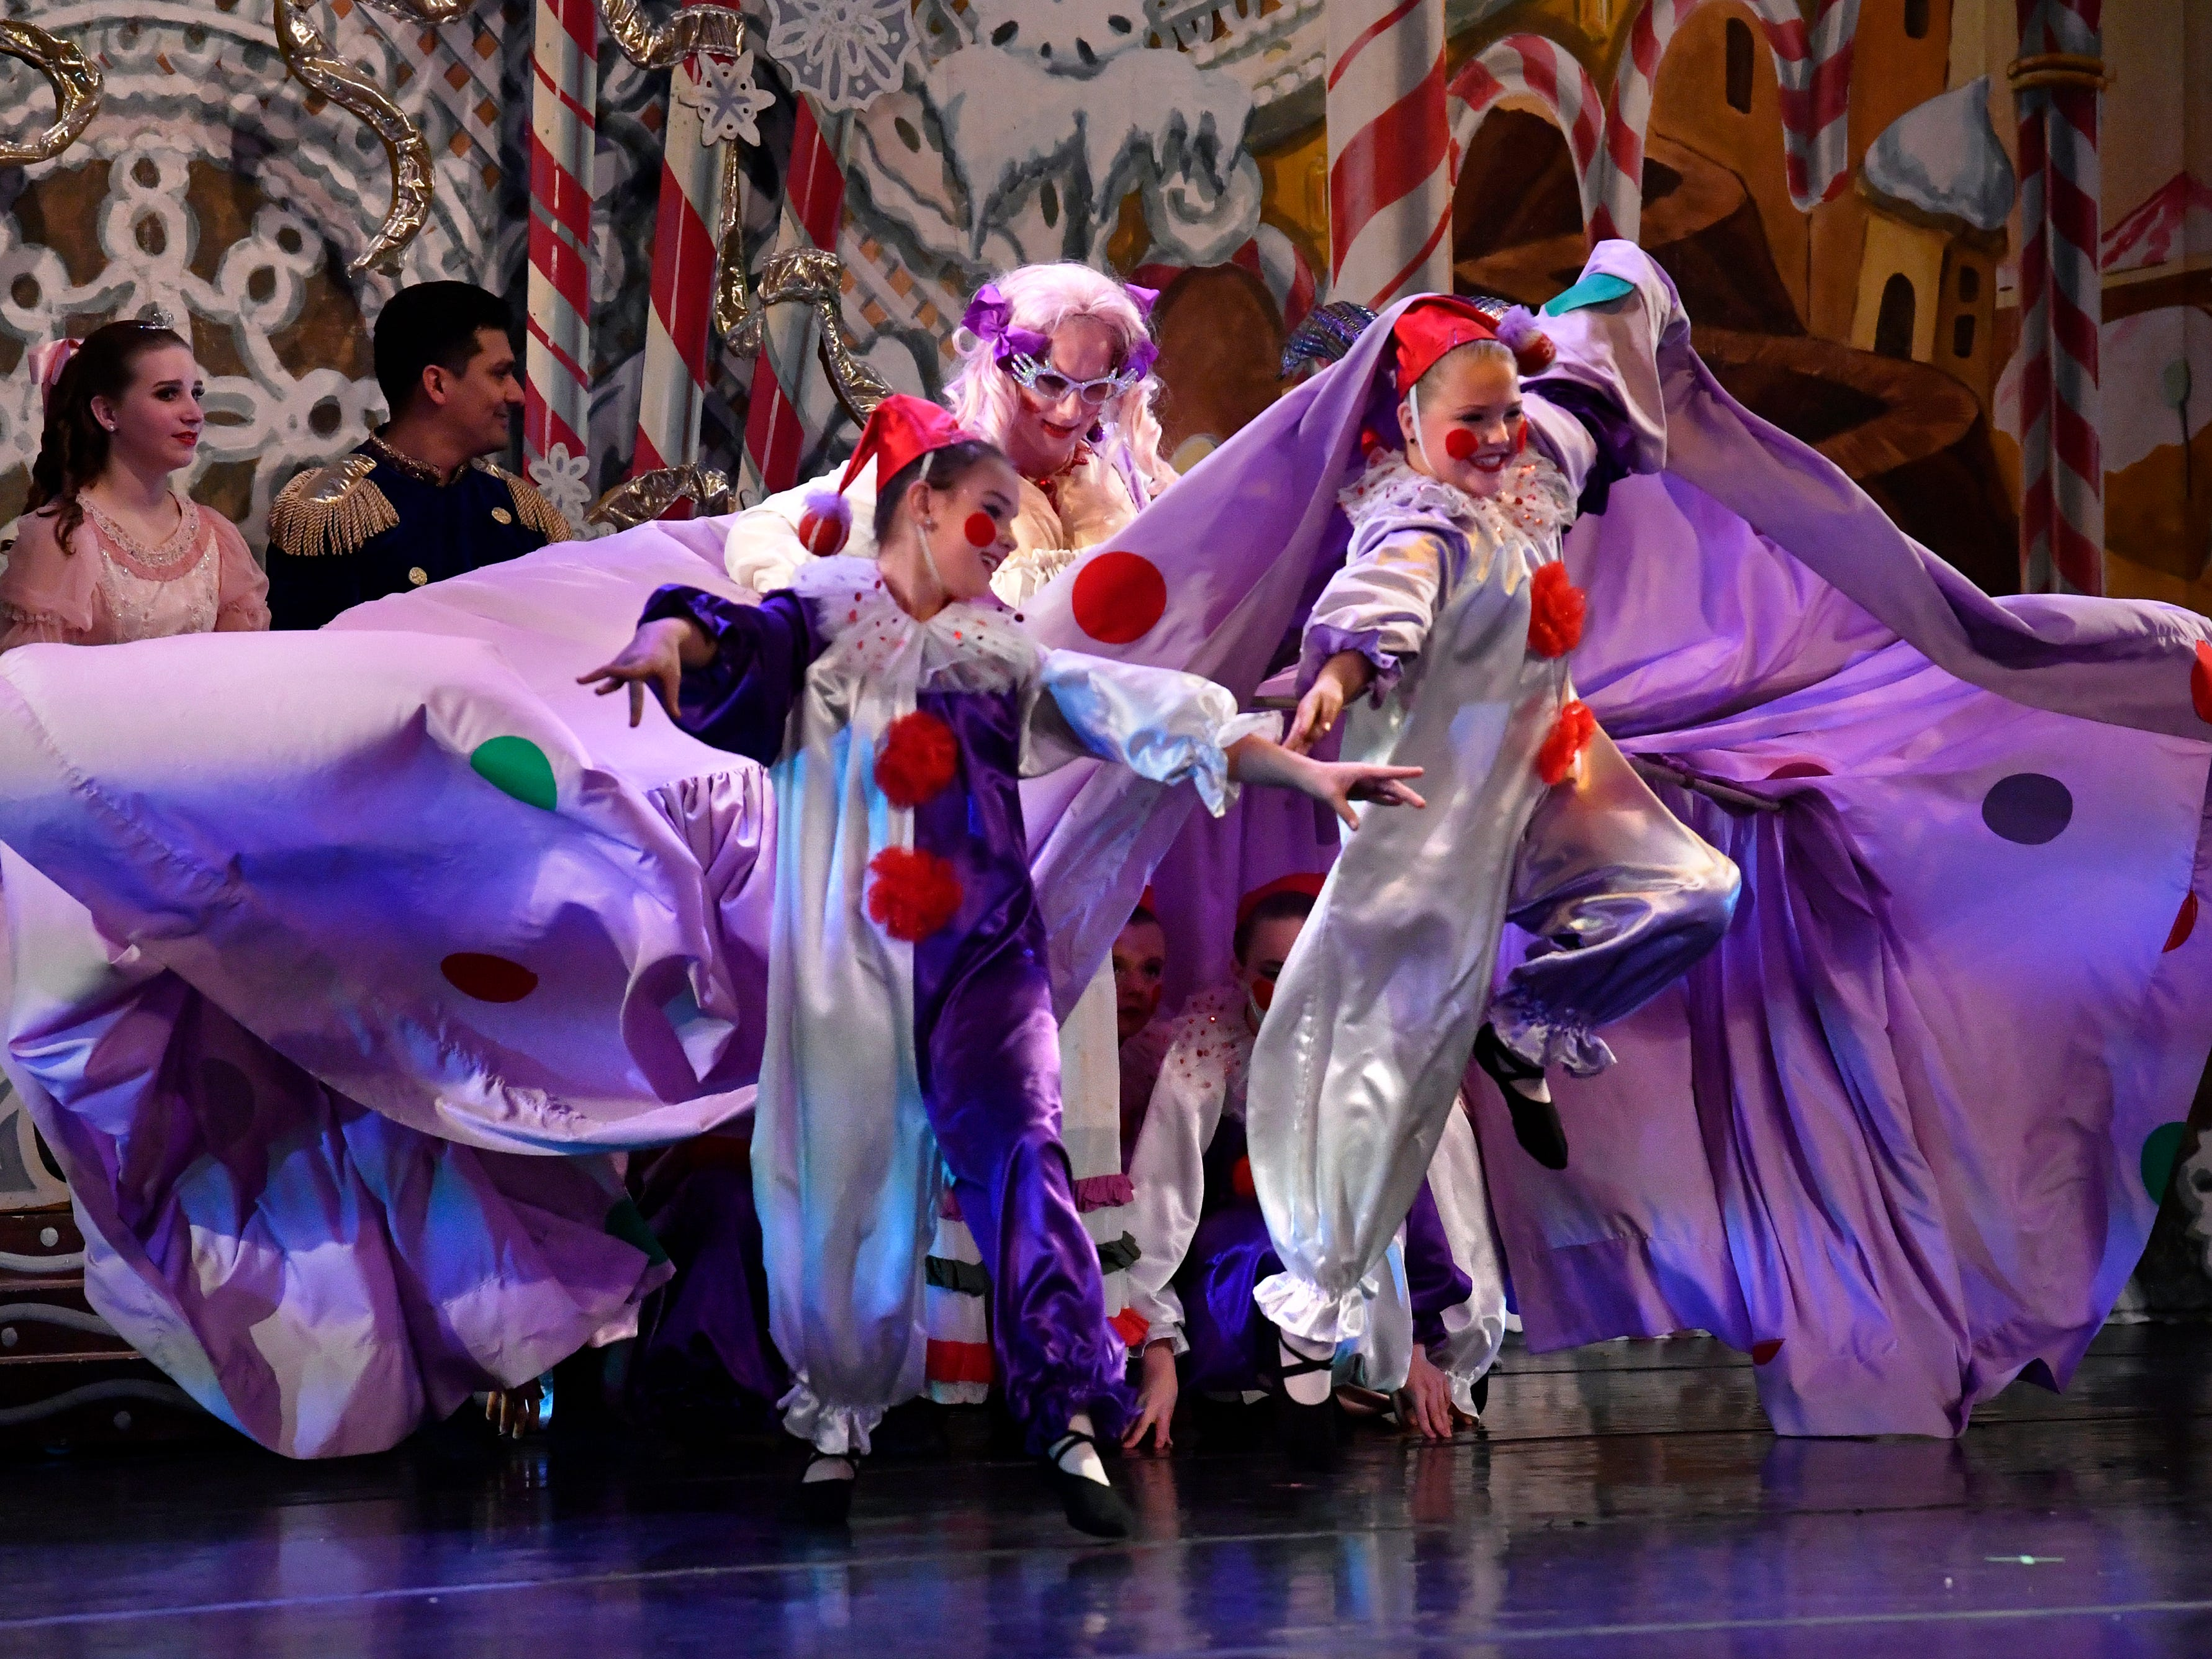 The Polichinelle clowns emerge from the skirts of Mother Ginger, played to comedic effect by Seth Willis, during the Friday morning performance of The Nutcracker for school children Nov. 19, 2018. This was the 31st year for the Abilene Ballet Theatre production, held at the Paramount Theatre.